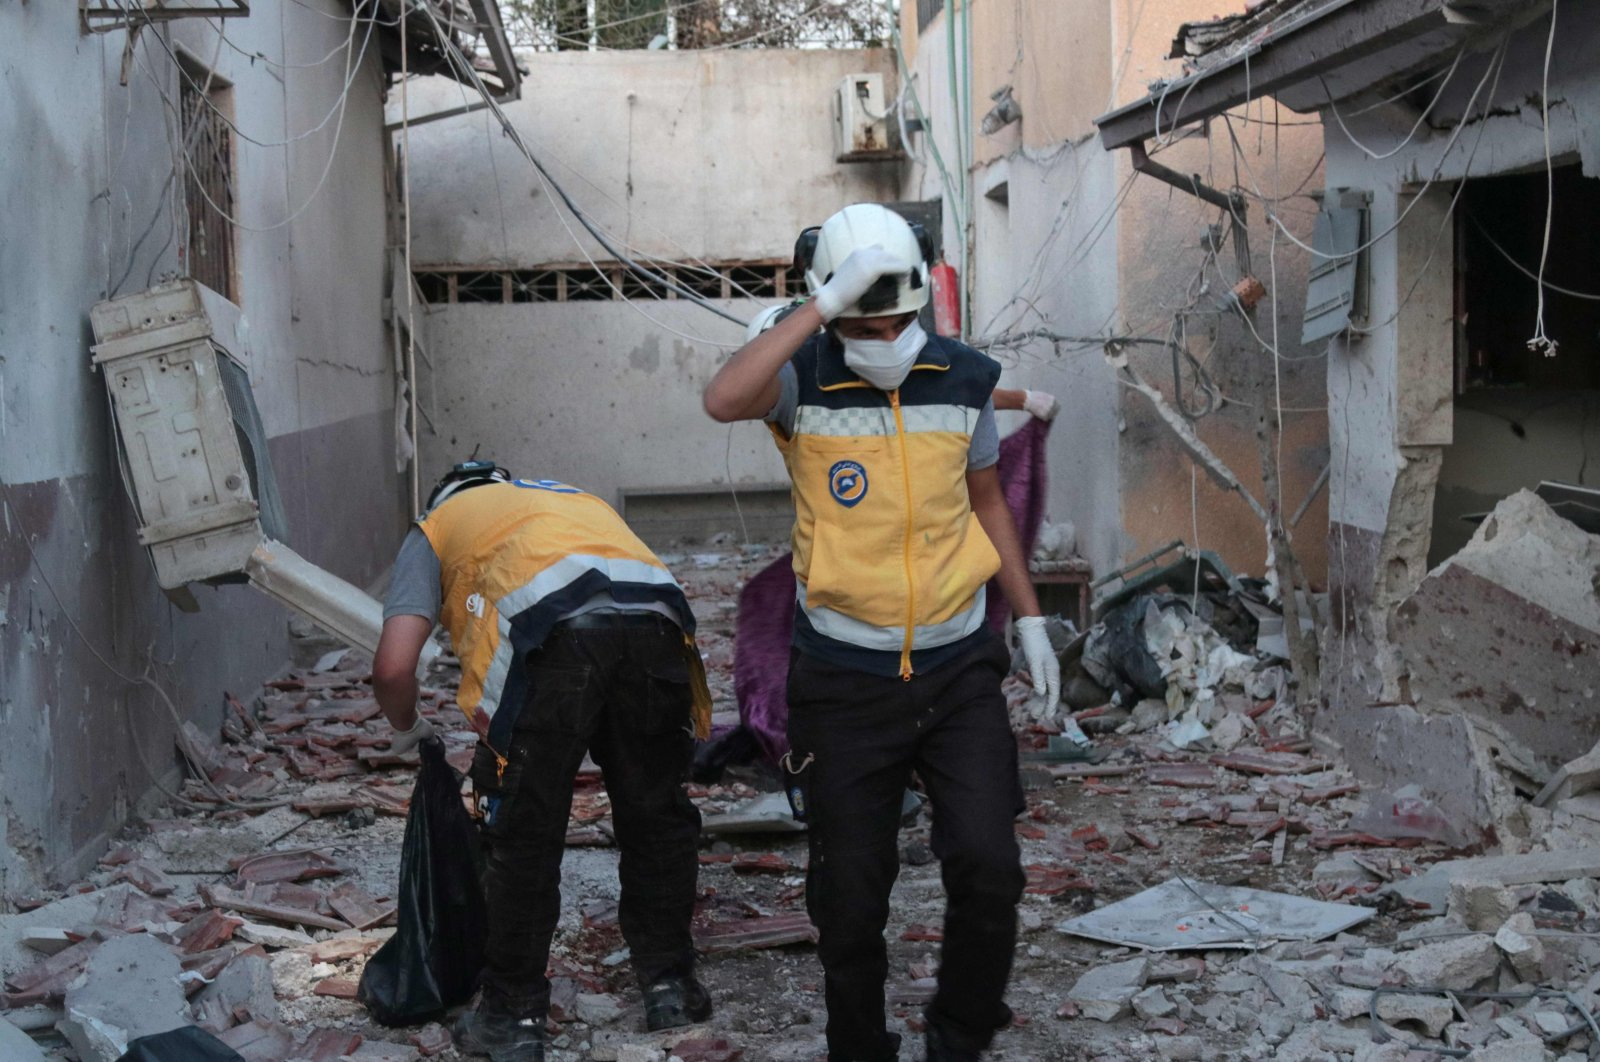 Members of Syria's Civil Defence (White Helmets) sift through the rubble at Al-Shifaa Hospital following the YPG shelling of the opposition-held city of Afrin in northern Syria, June 12, 2021. (AFP Photo)